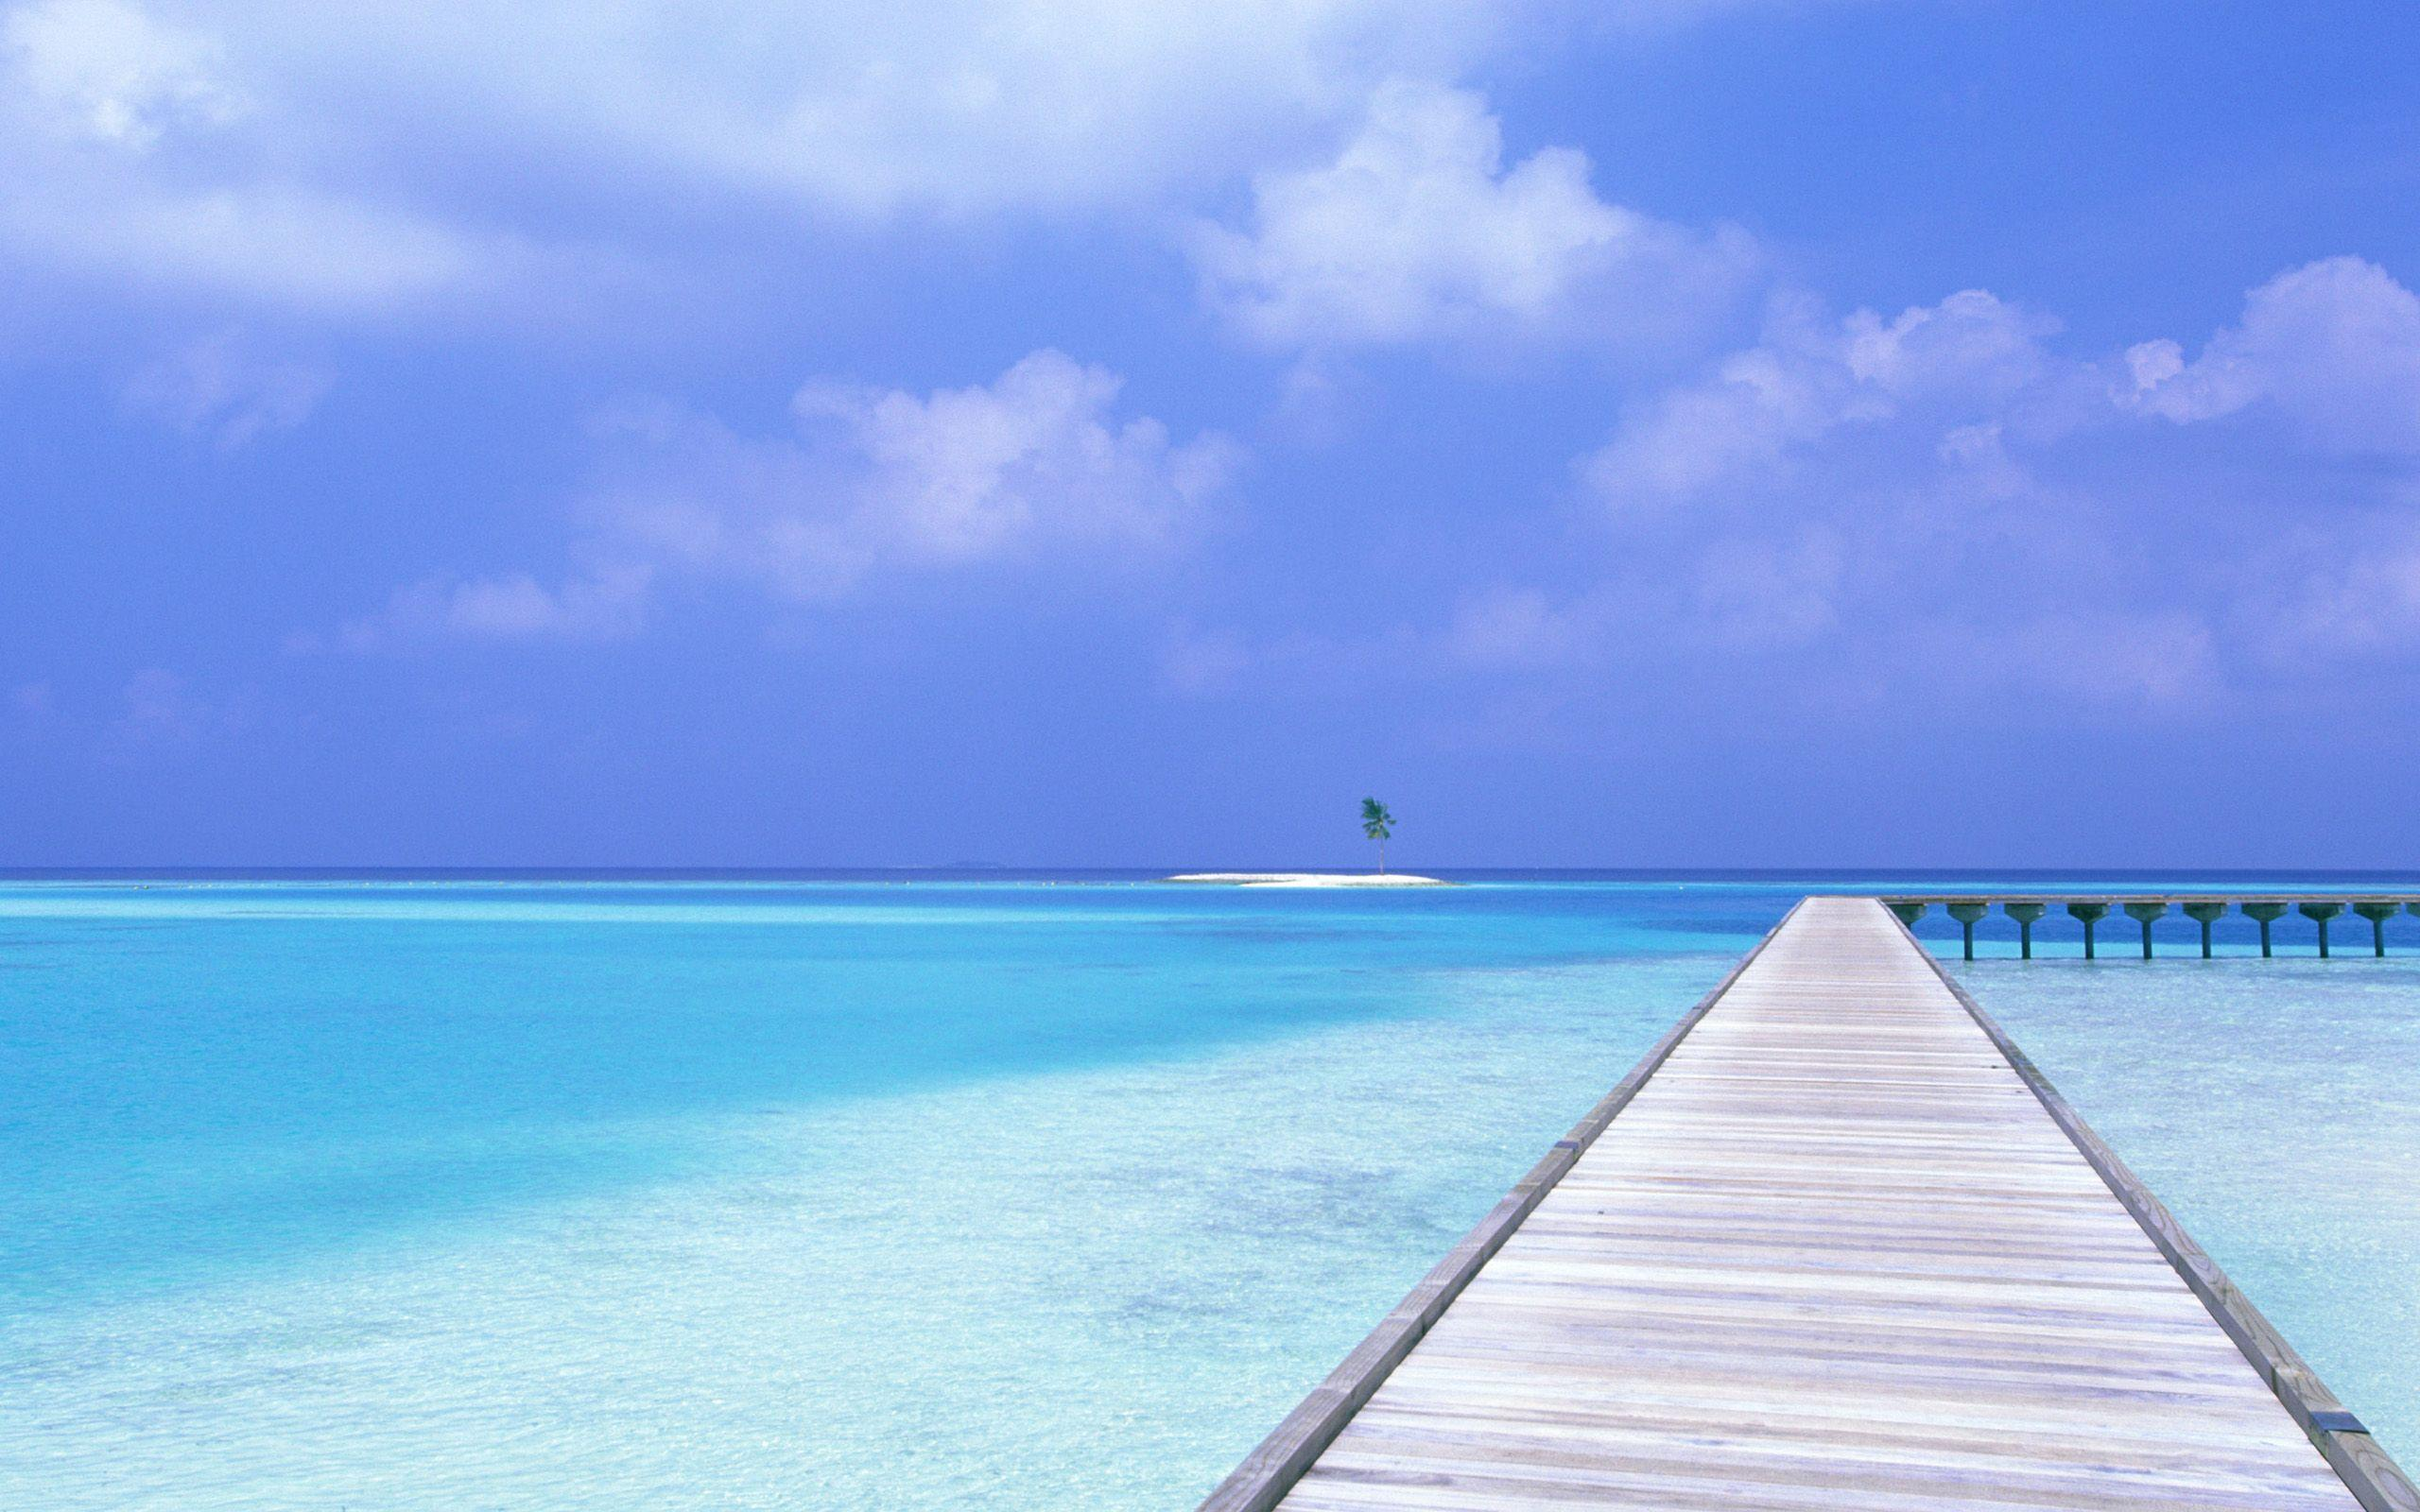 Beach Blue Sky Wallpapers | HD Wallpapers